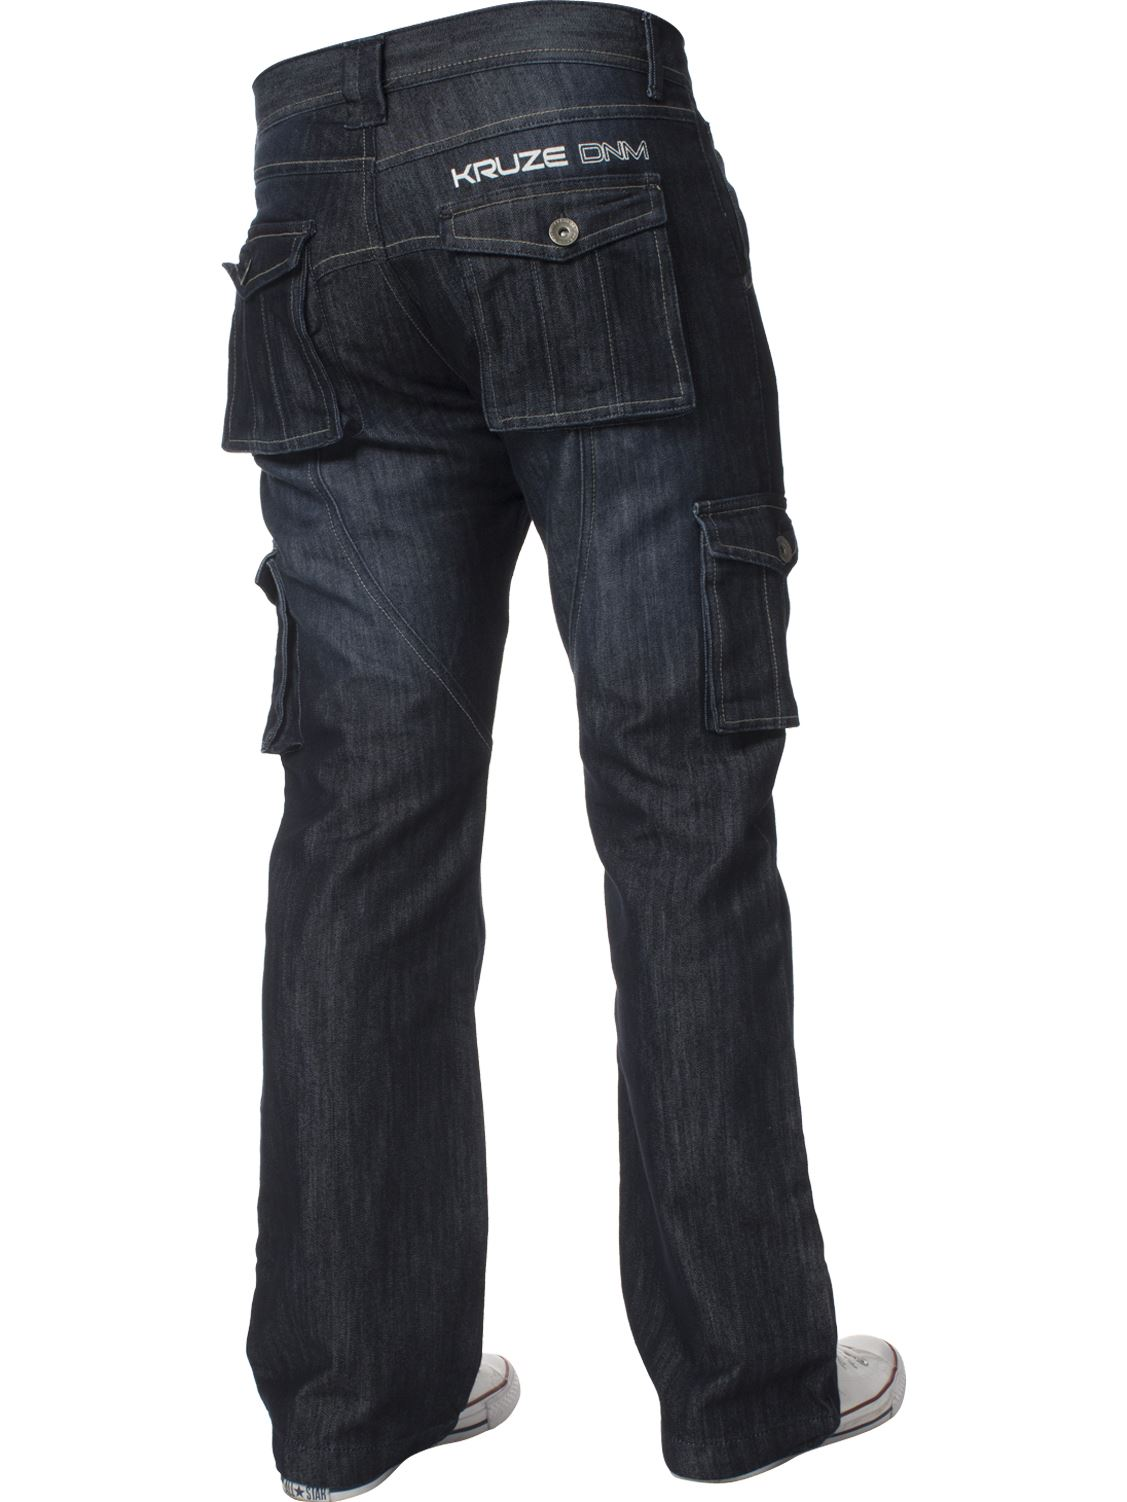 Mens-Cargo-Jeans-Combat-Trousers-Heavy-Duty-Work-Casual-Big-Tall-Denim-Pants thumbnail 64